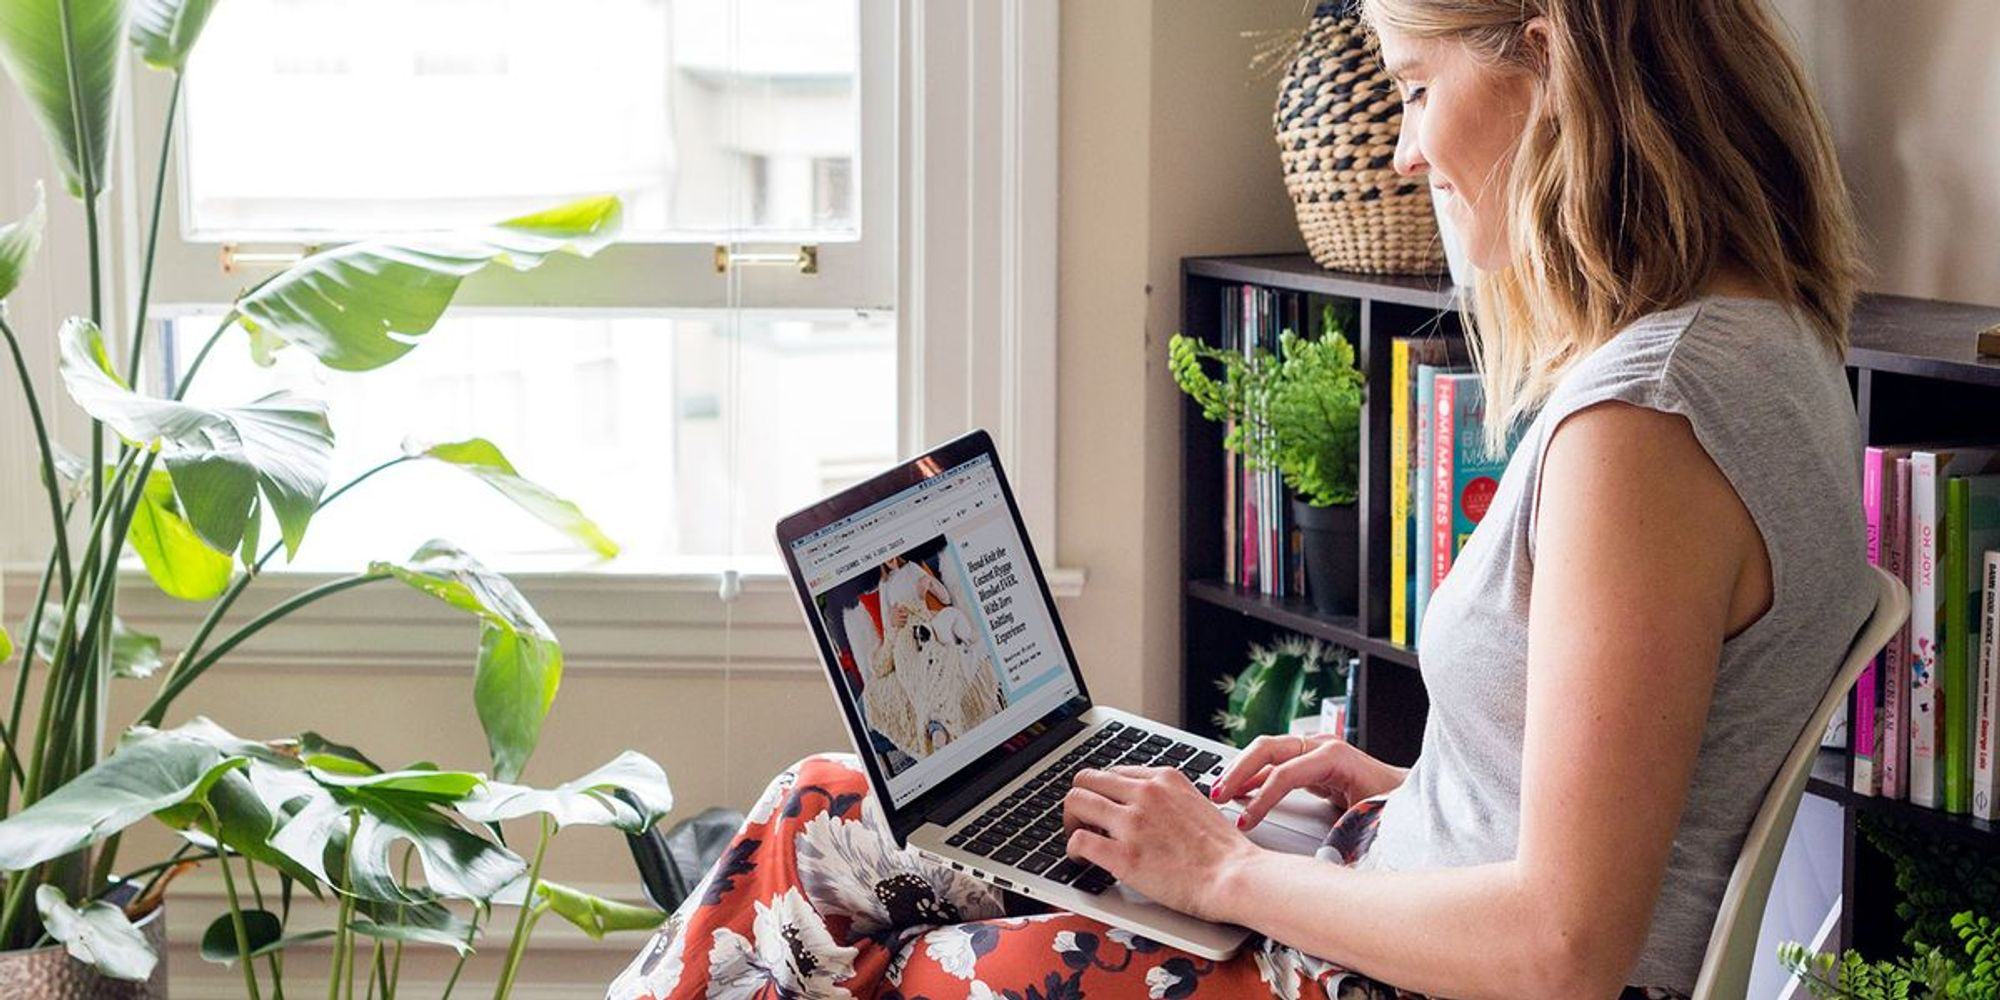 12 tips to stay productive while working from home